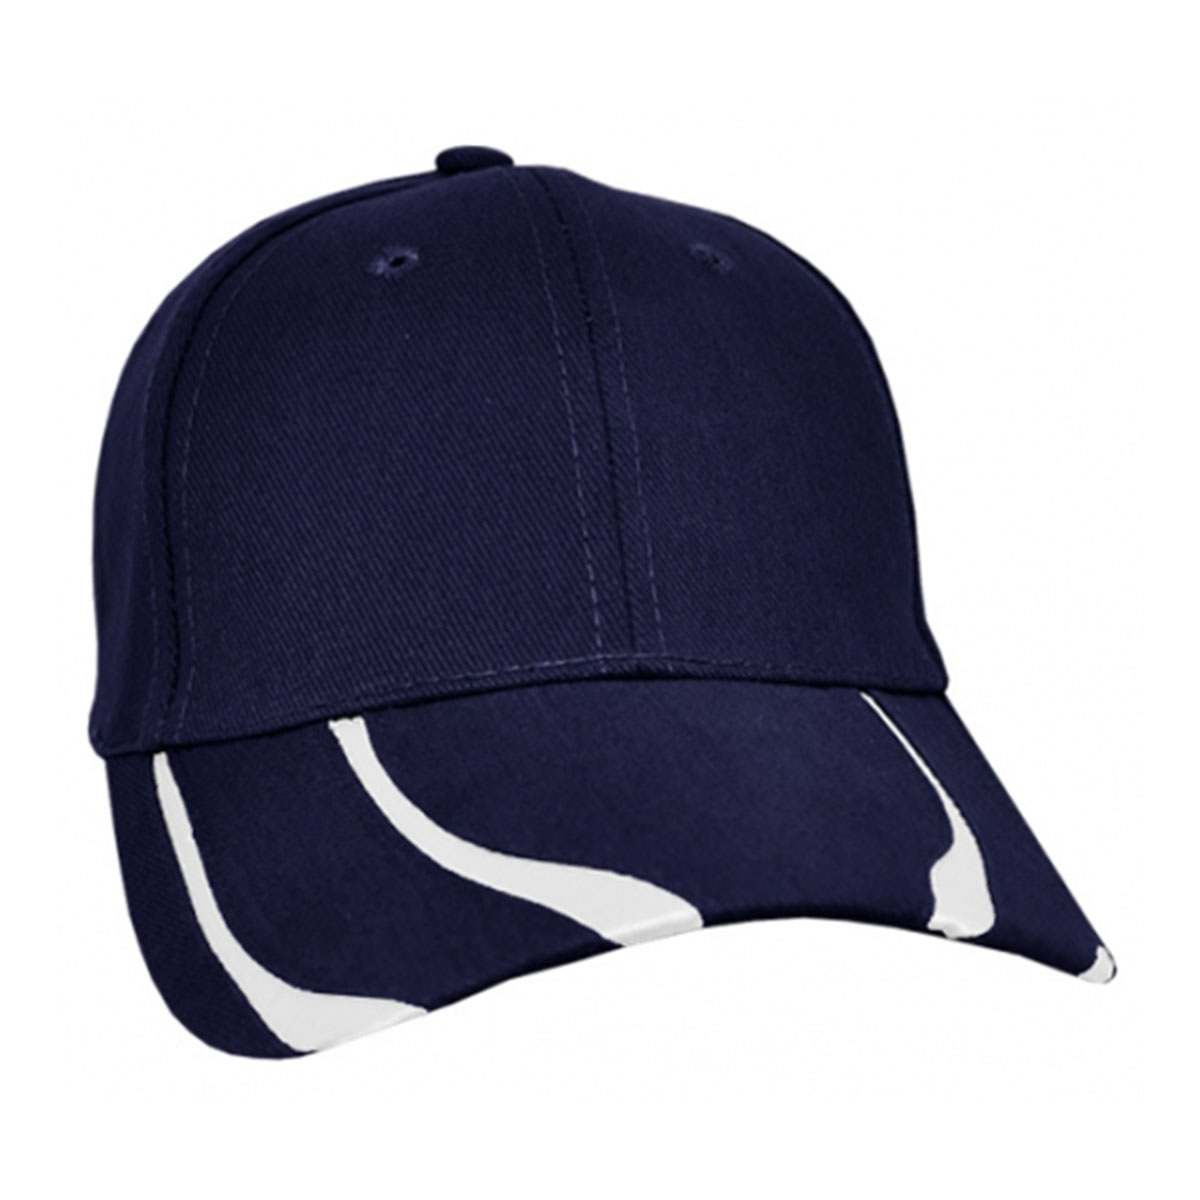 Striker Cap-Navy / White